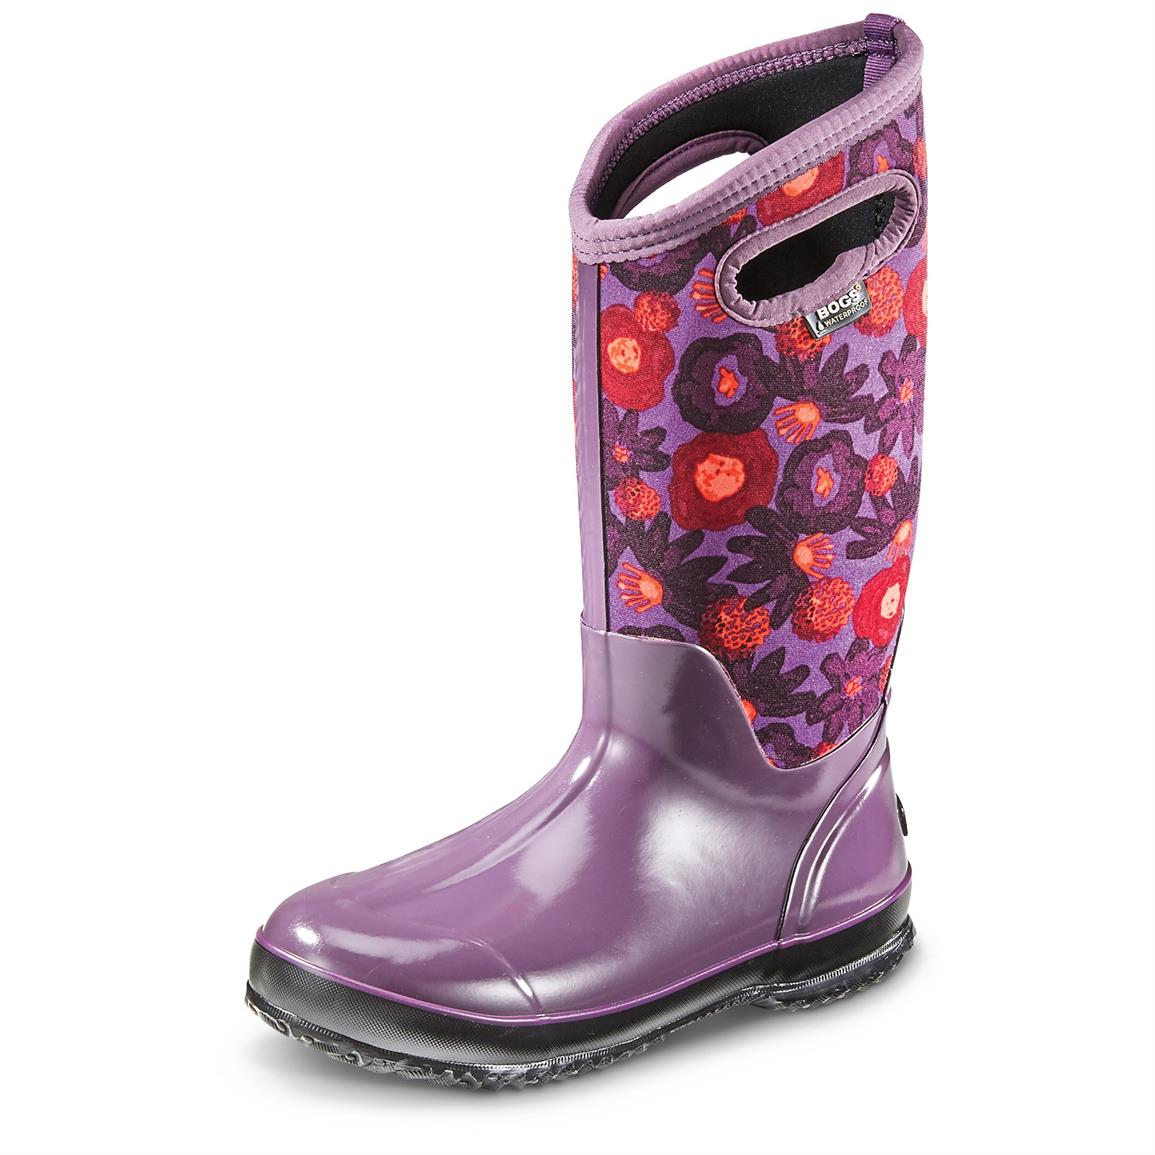 Bogs Women's Classic Watercolor Insulated Rubber Boots, Plum Multicolor